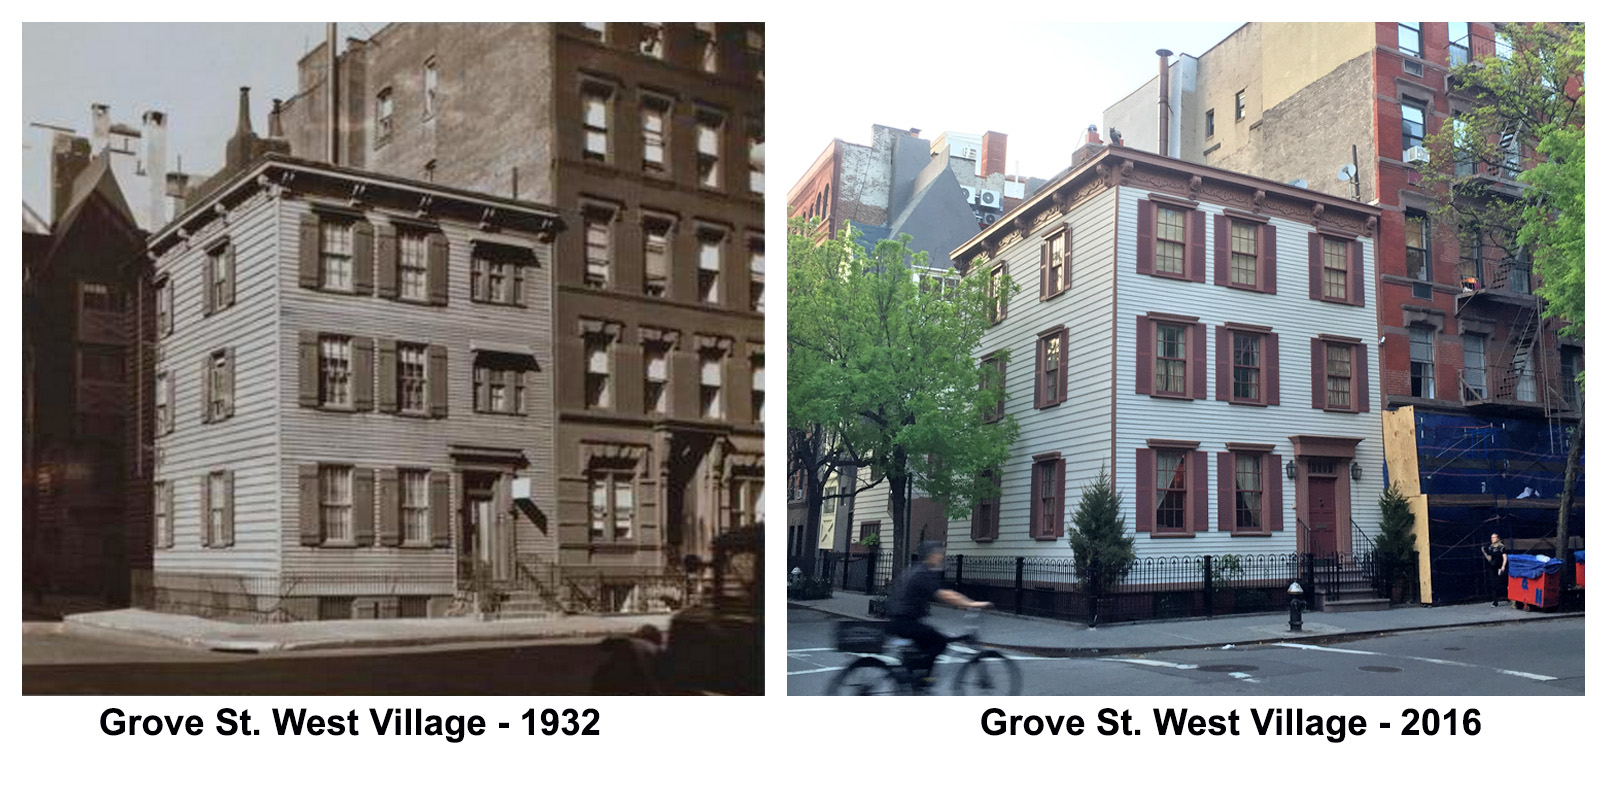 Grove St West Village - 1932